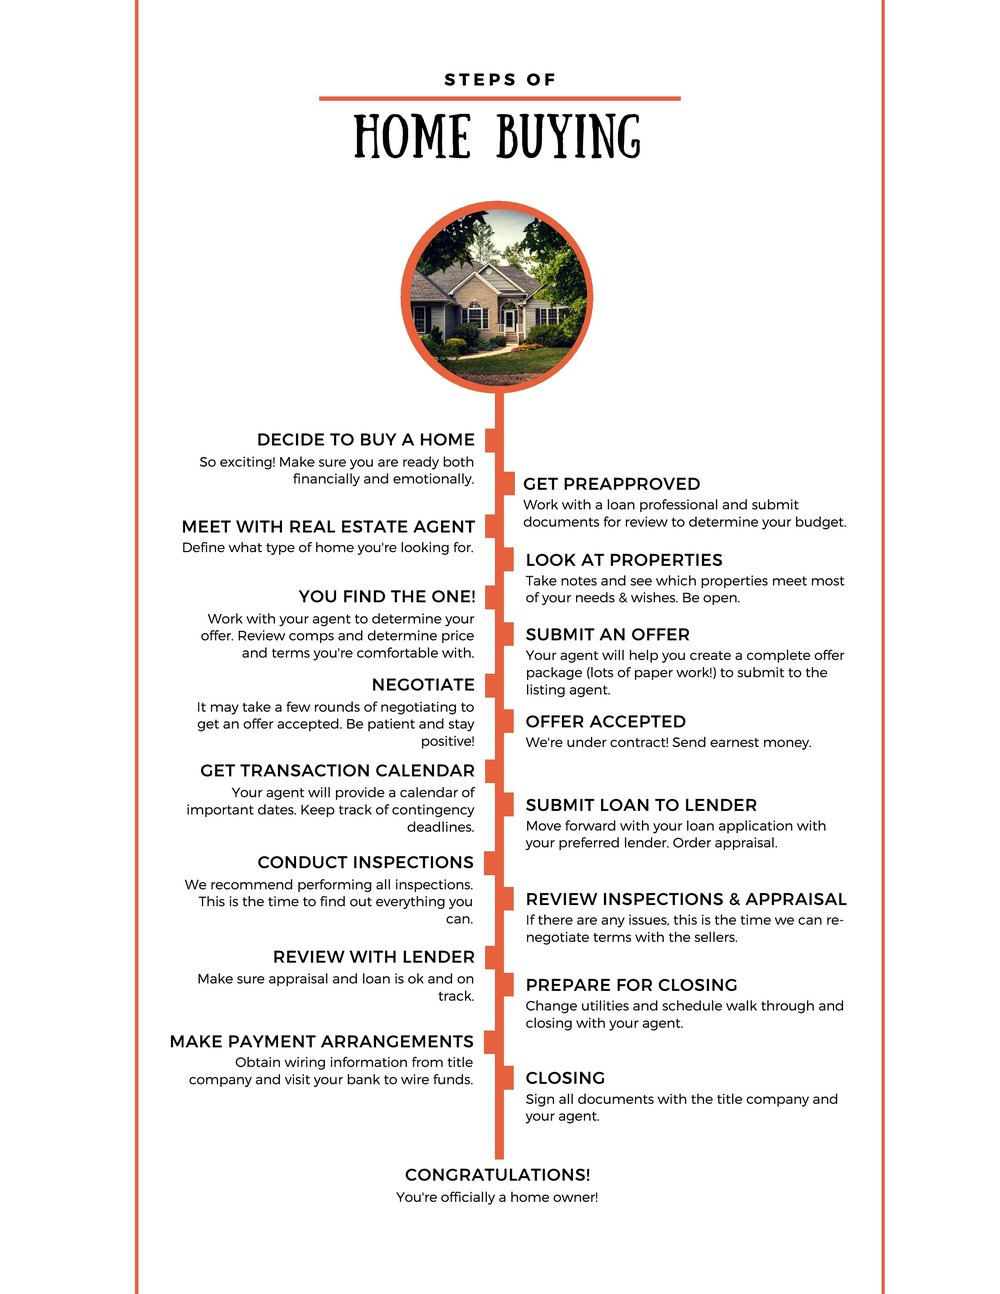 Home Buying Steps (1) (1)-page-001.jpg